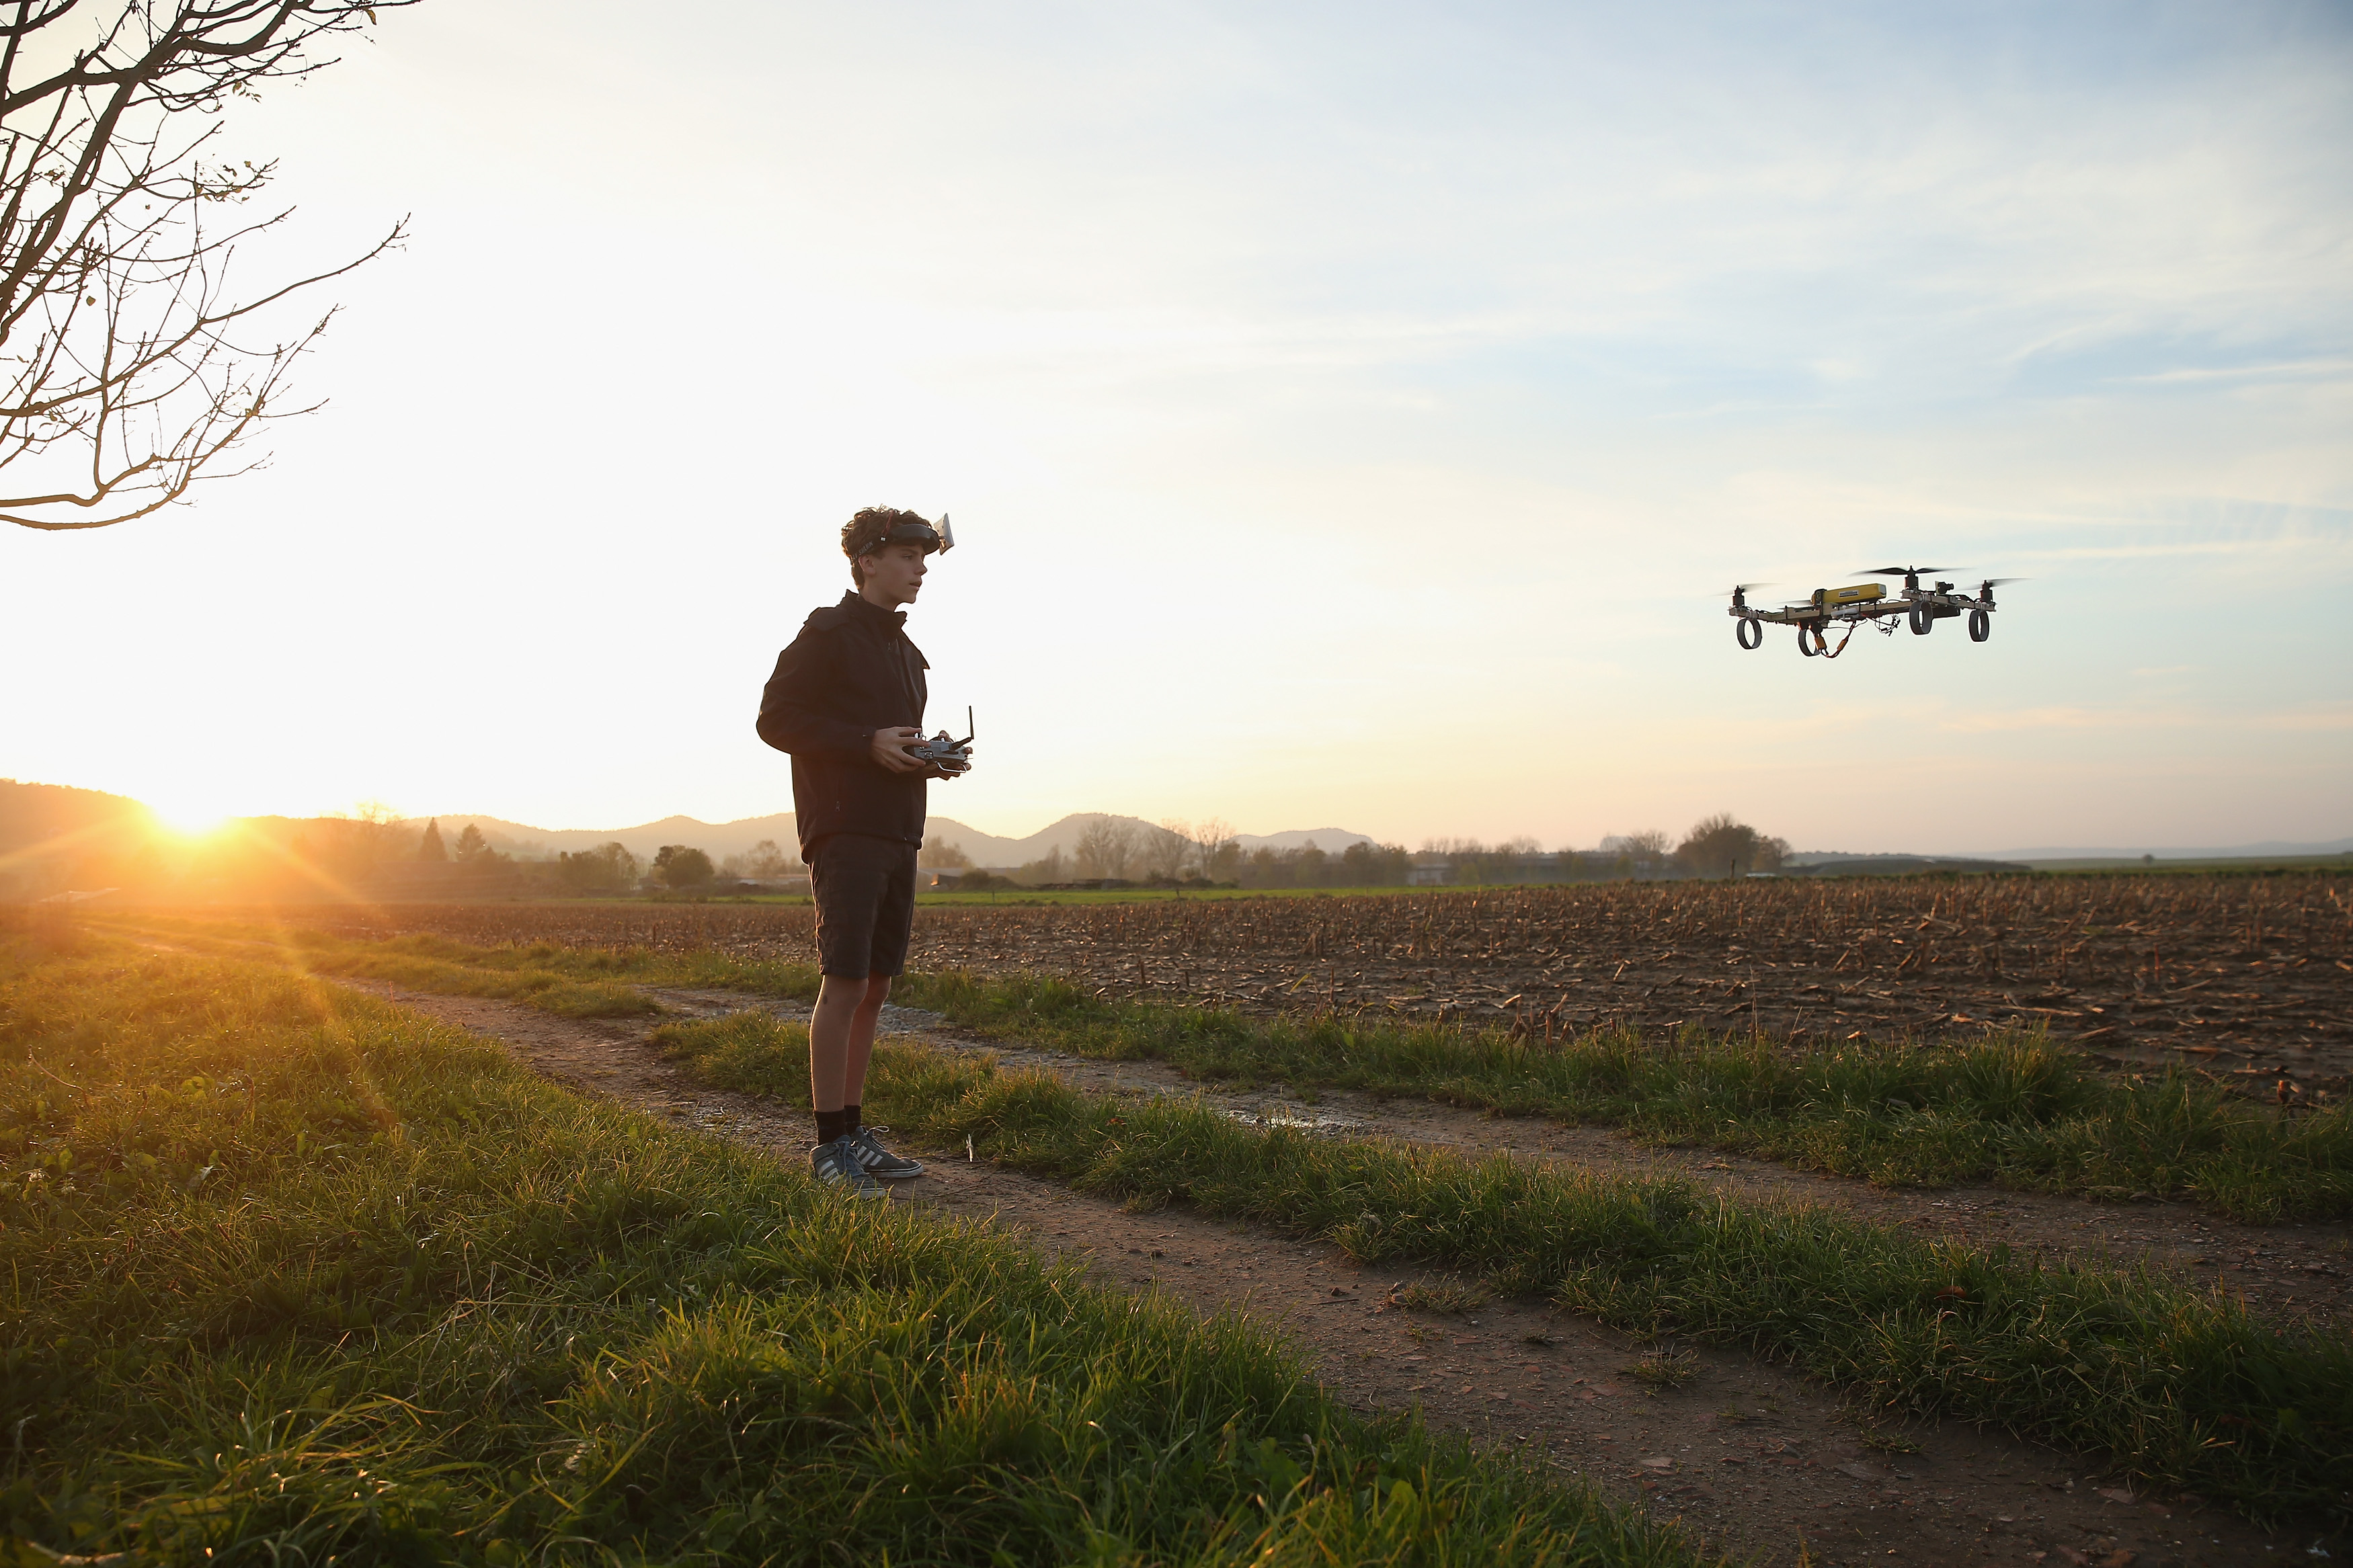 More than half a million drones registered in first year